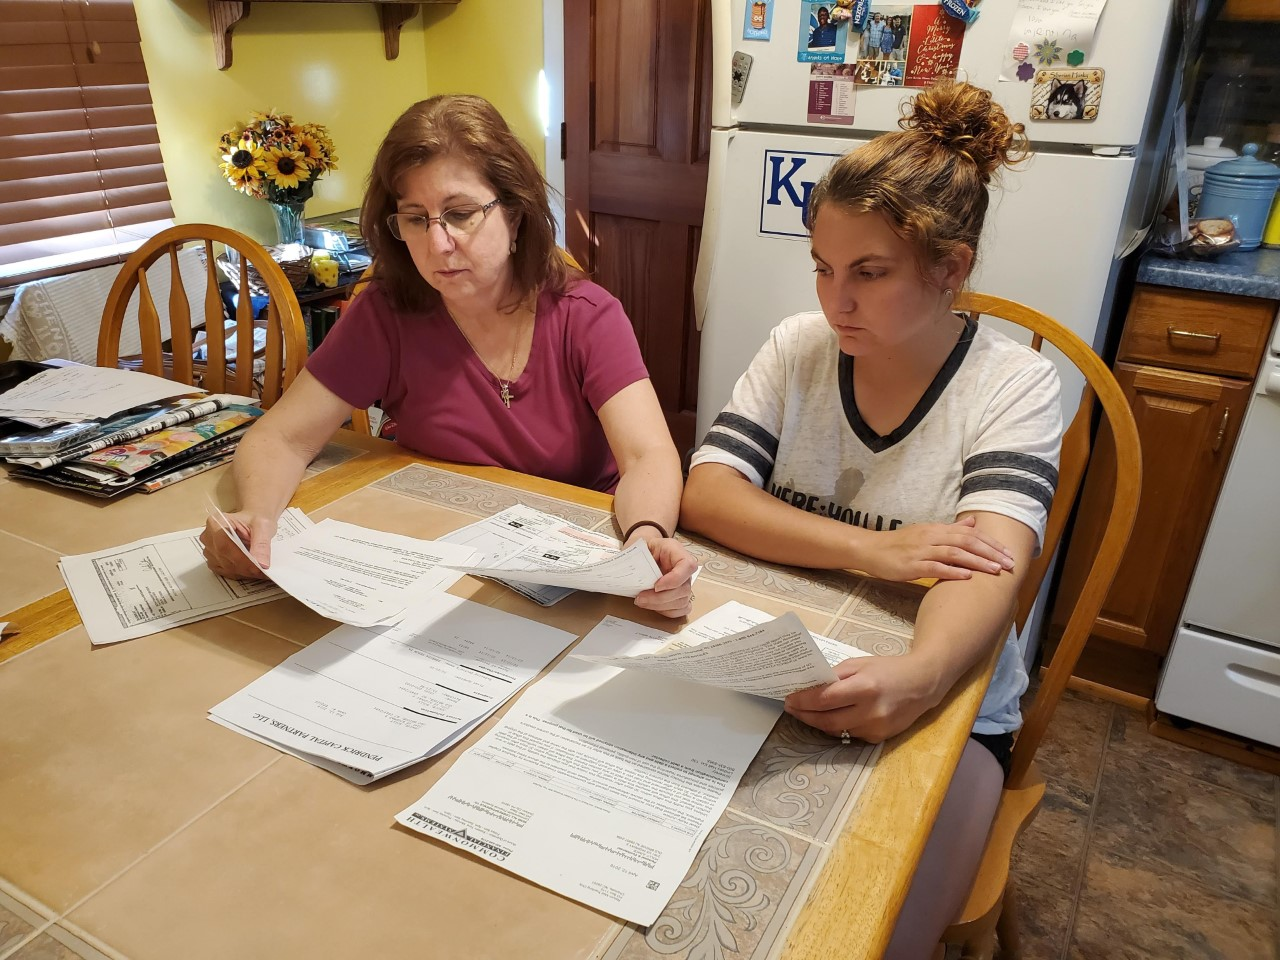 Collections agency ignores proof that debt was paid. What happens next?